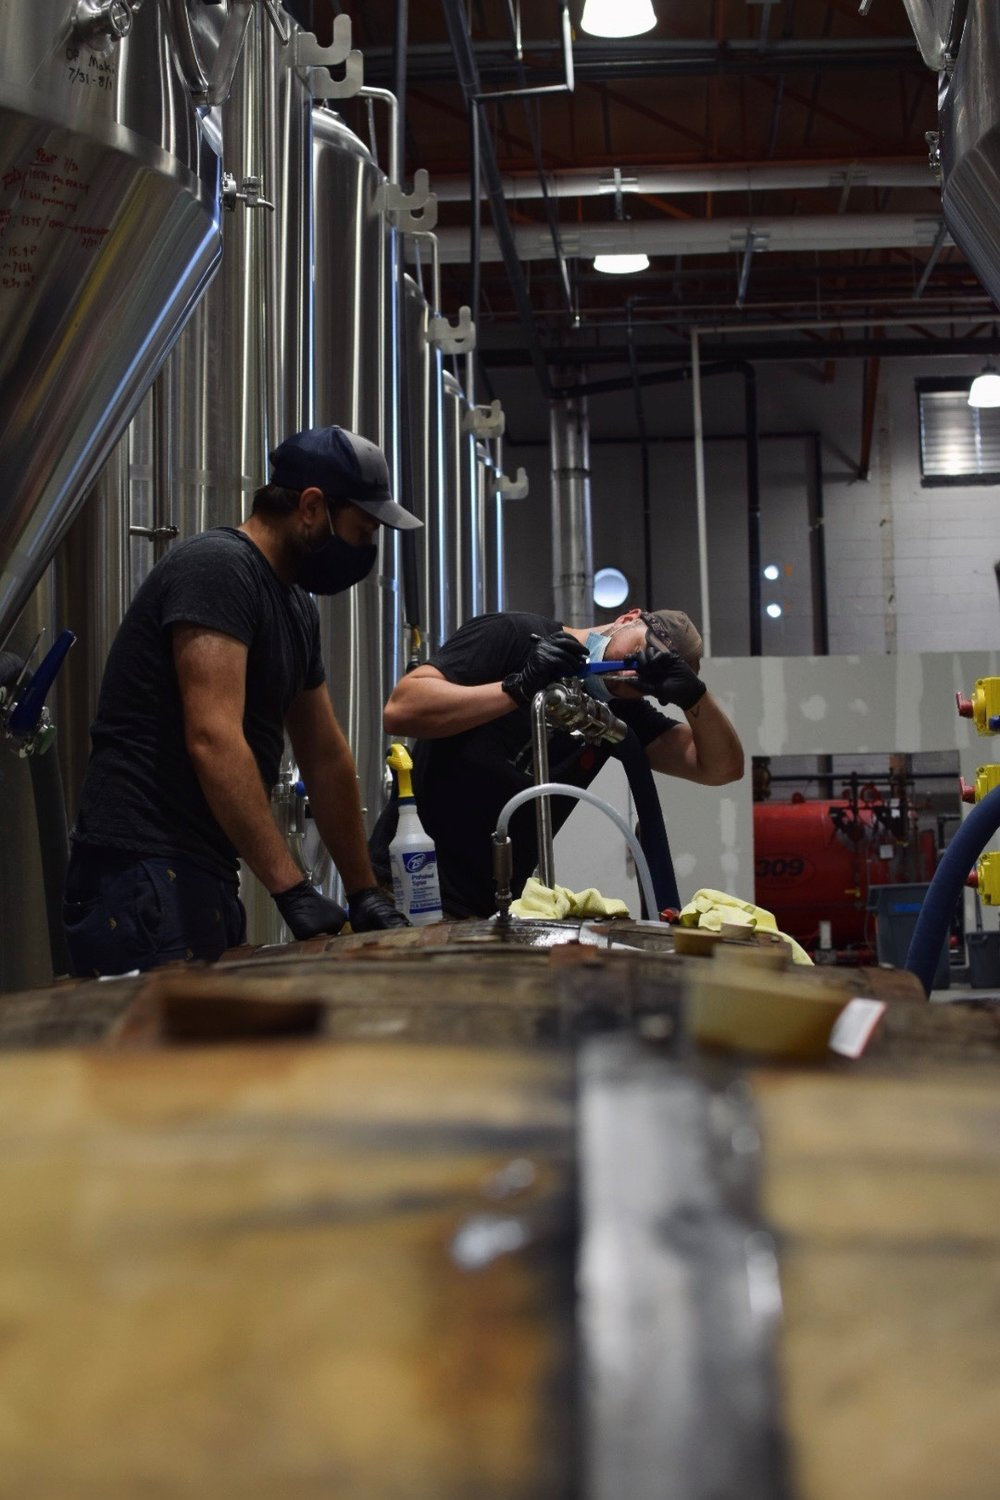 Jason Stein and Zac Ross at work at 12 Percent in North Haven, Conn., where Timber Ales is produced.